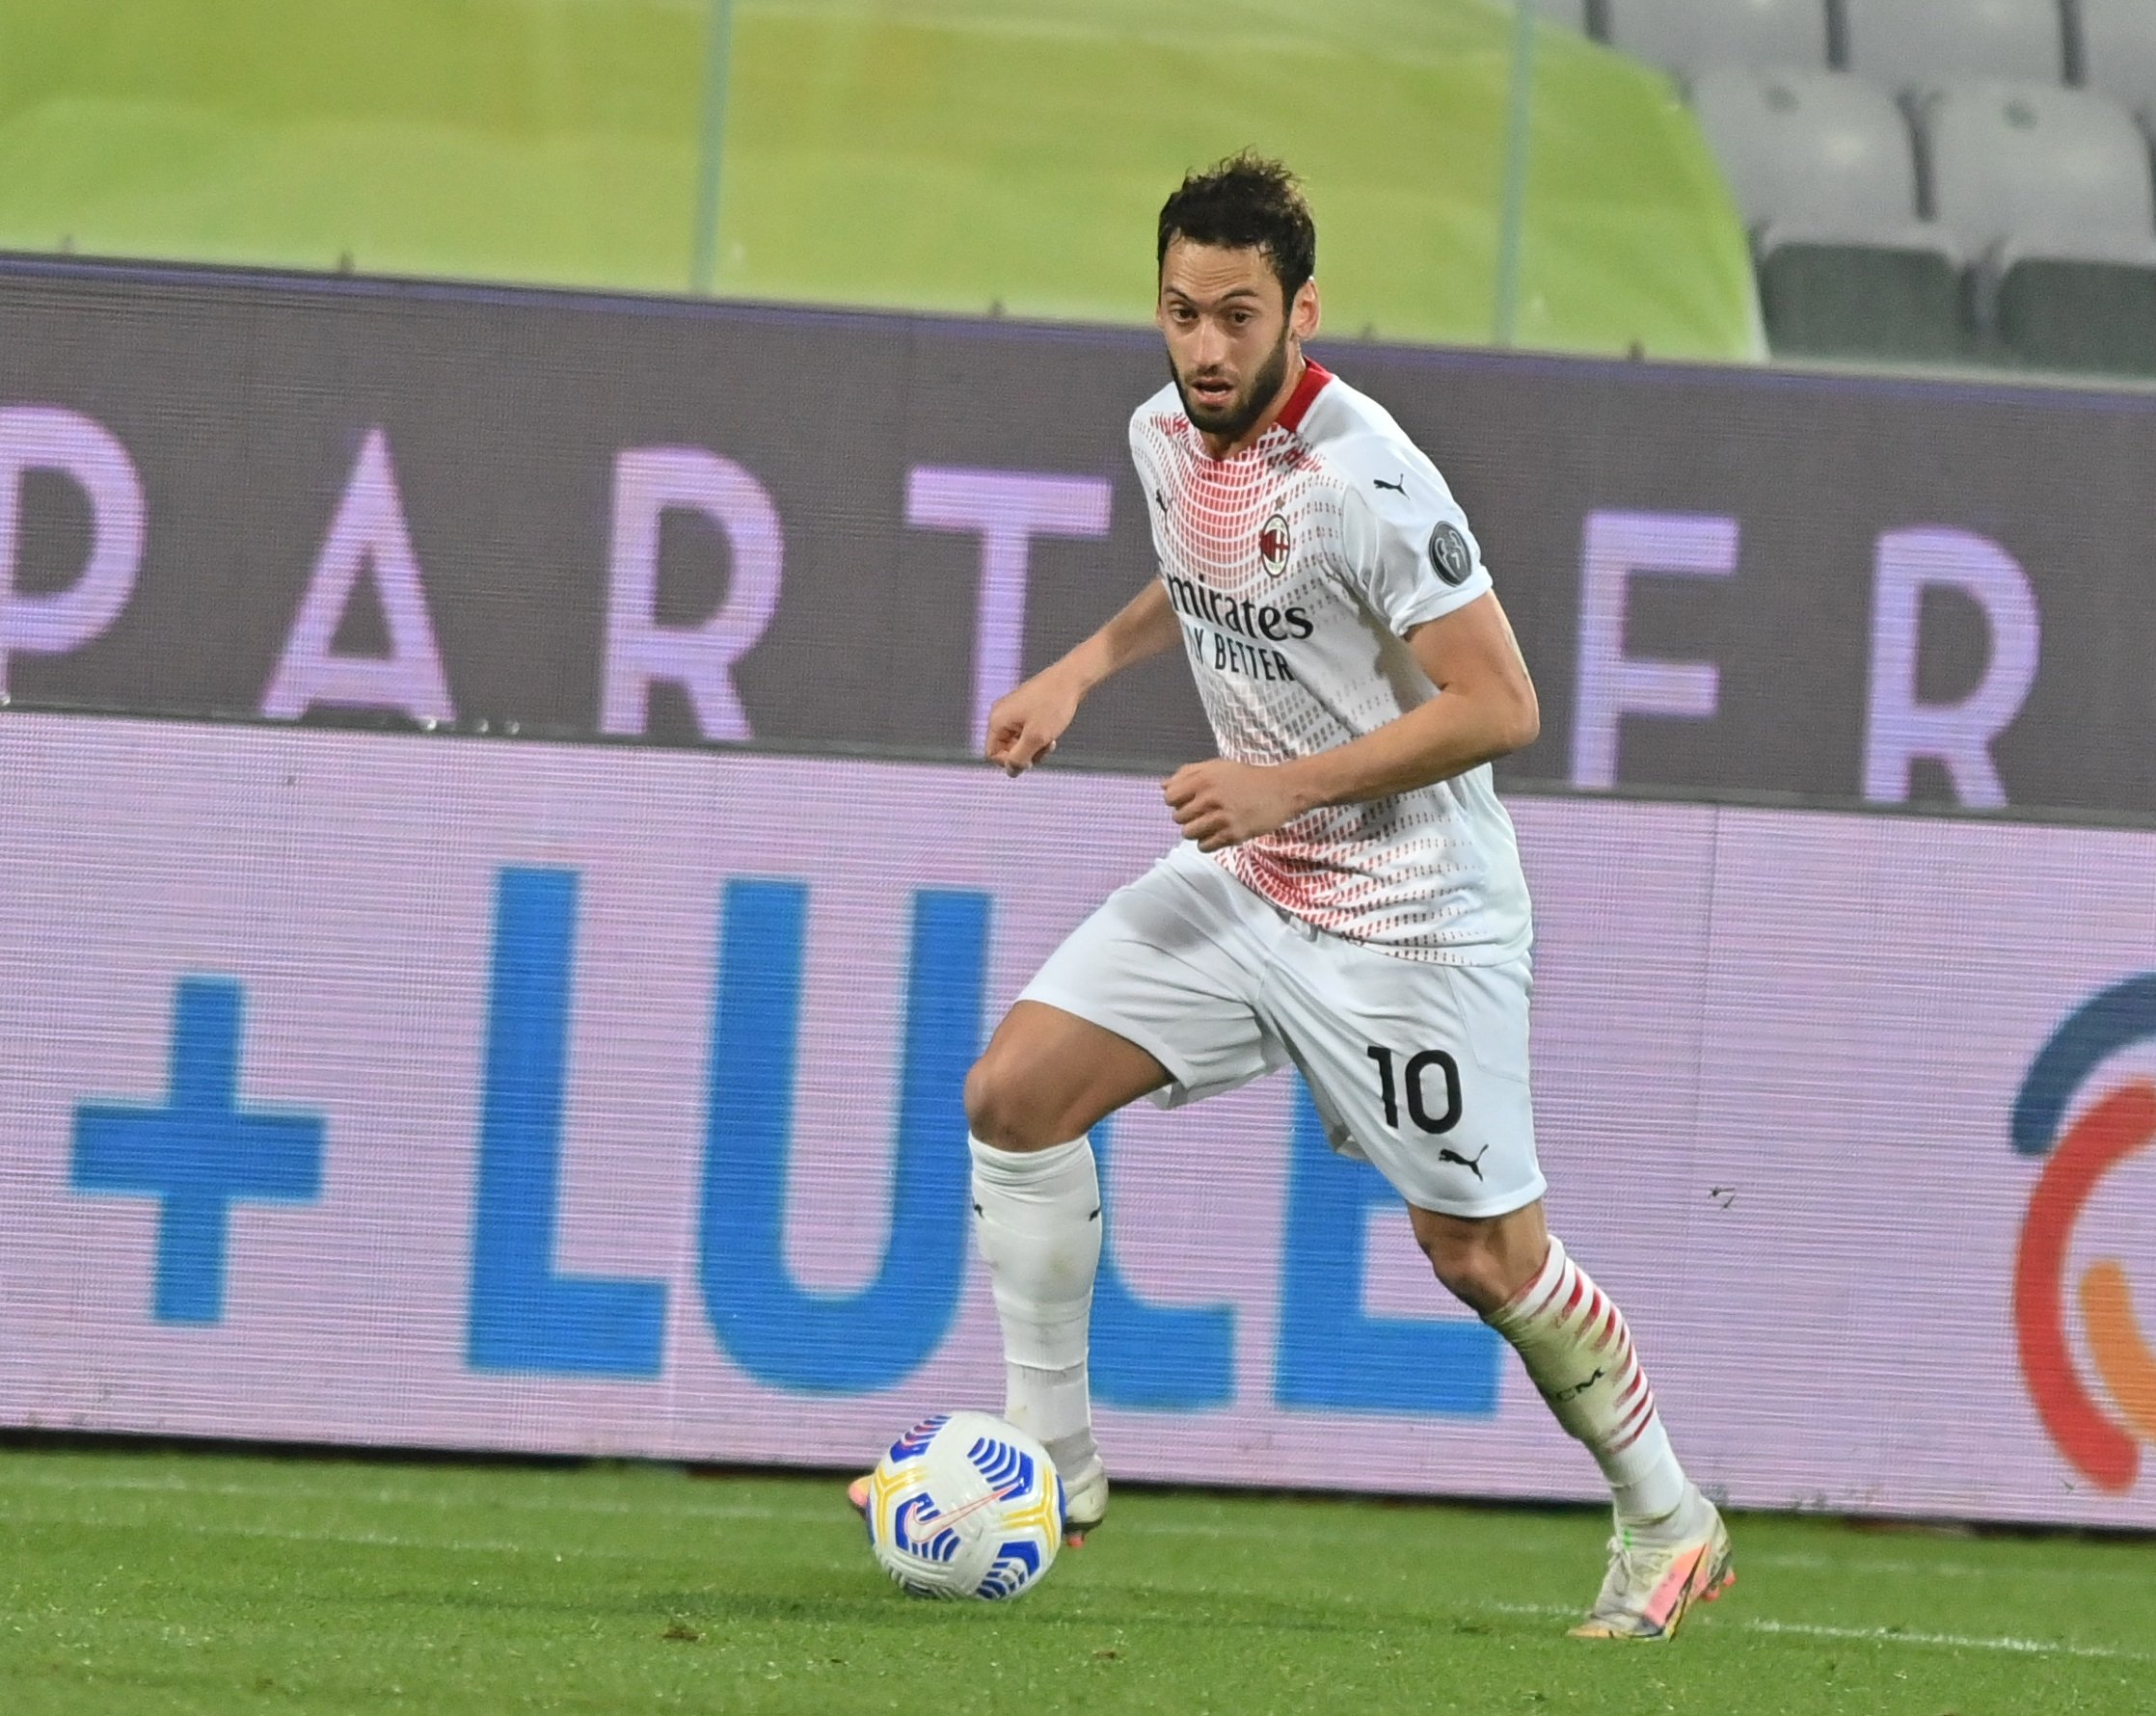 Milan's Turkish midfielder Hakan Çalhanoğlu in action during a Serie A match against Fiorentina in Florence, Italy, March 21, 2021. (AA photo)